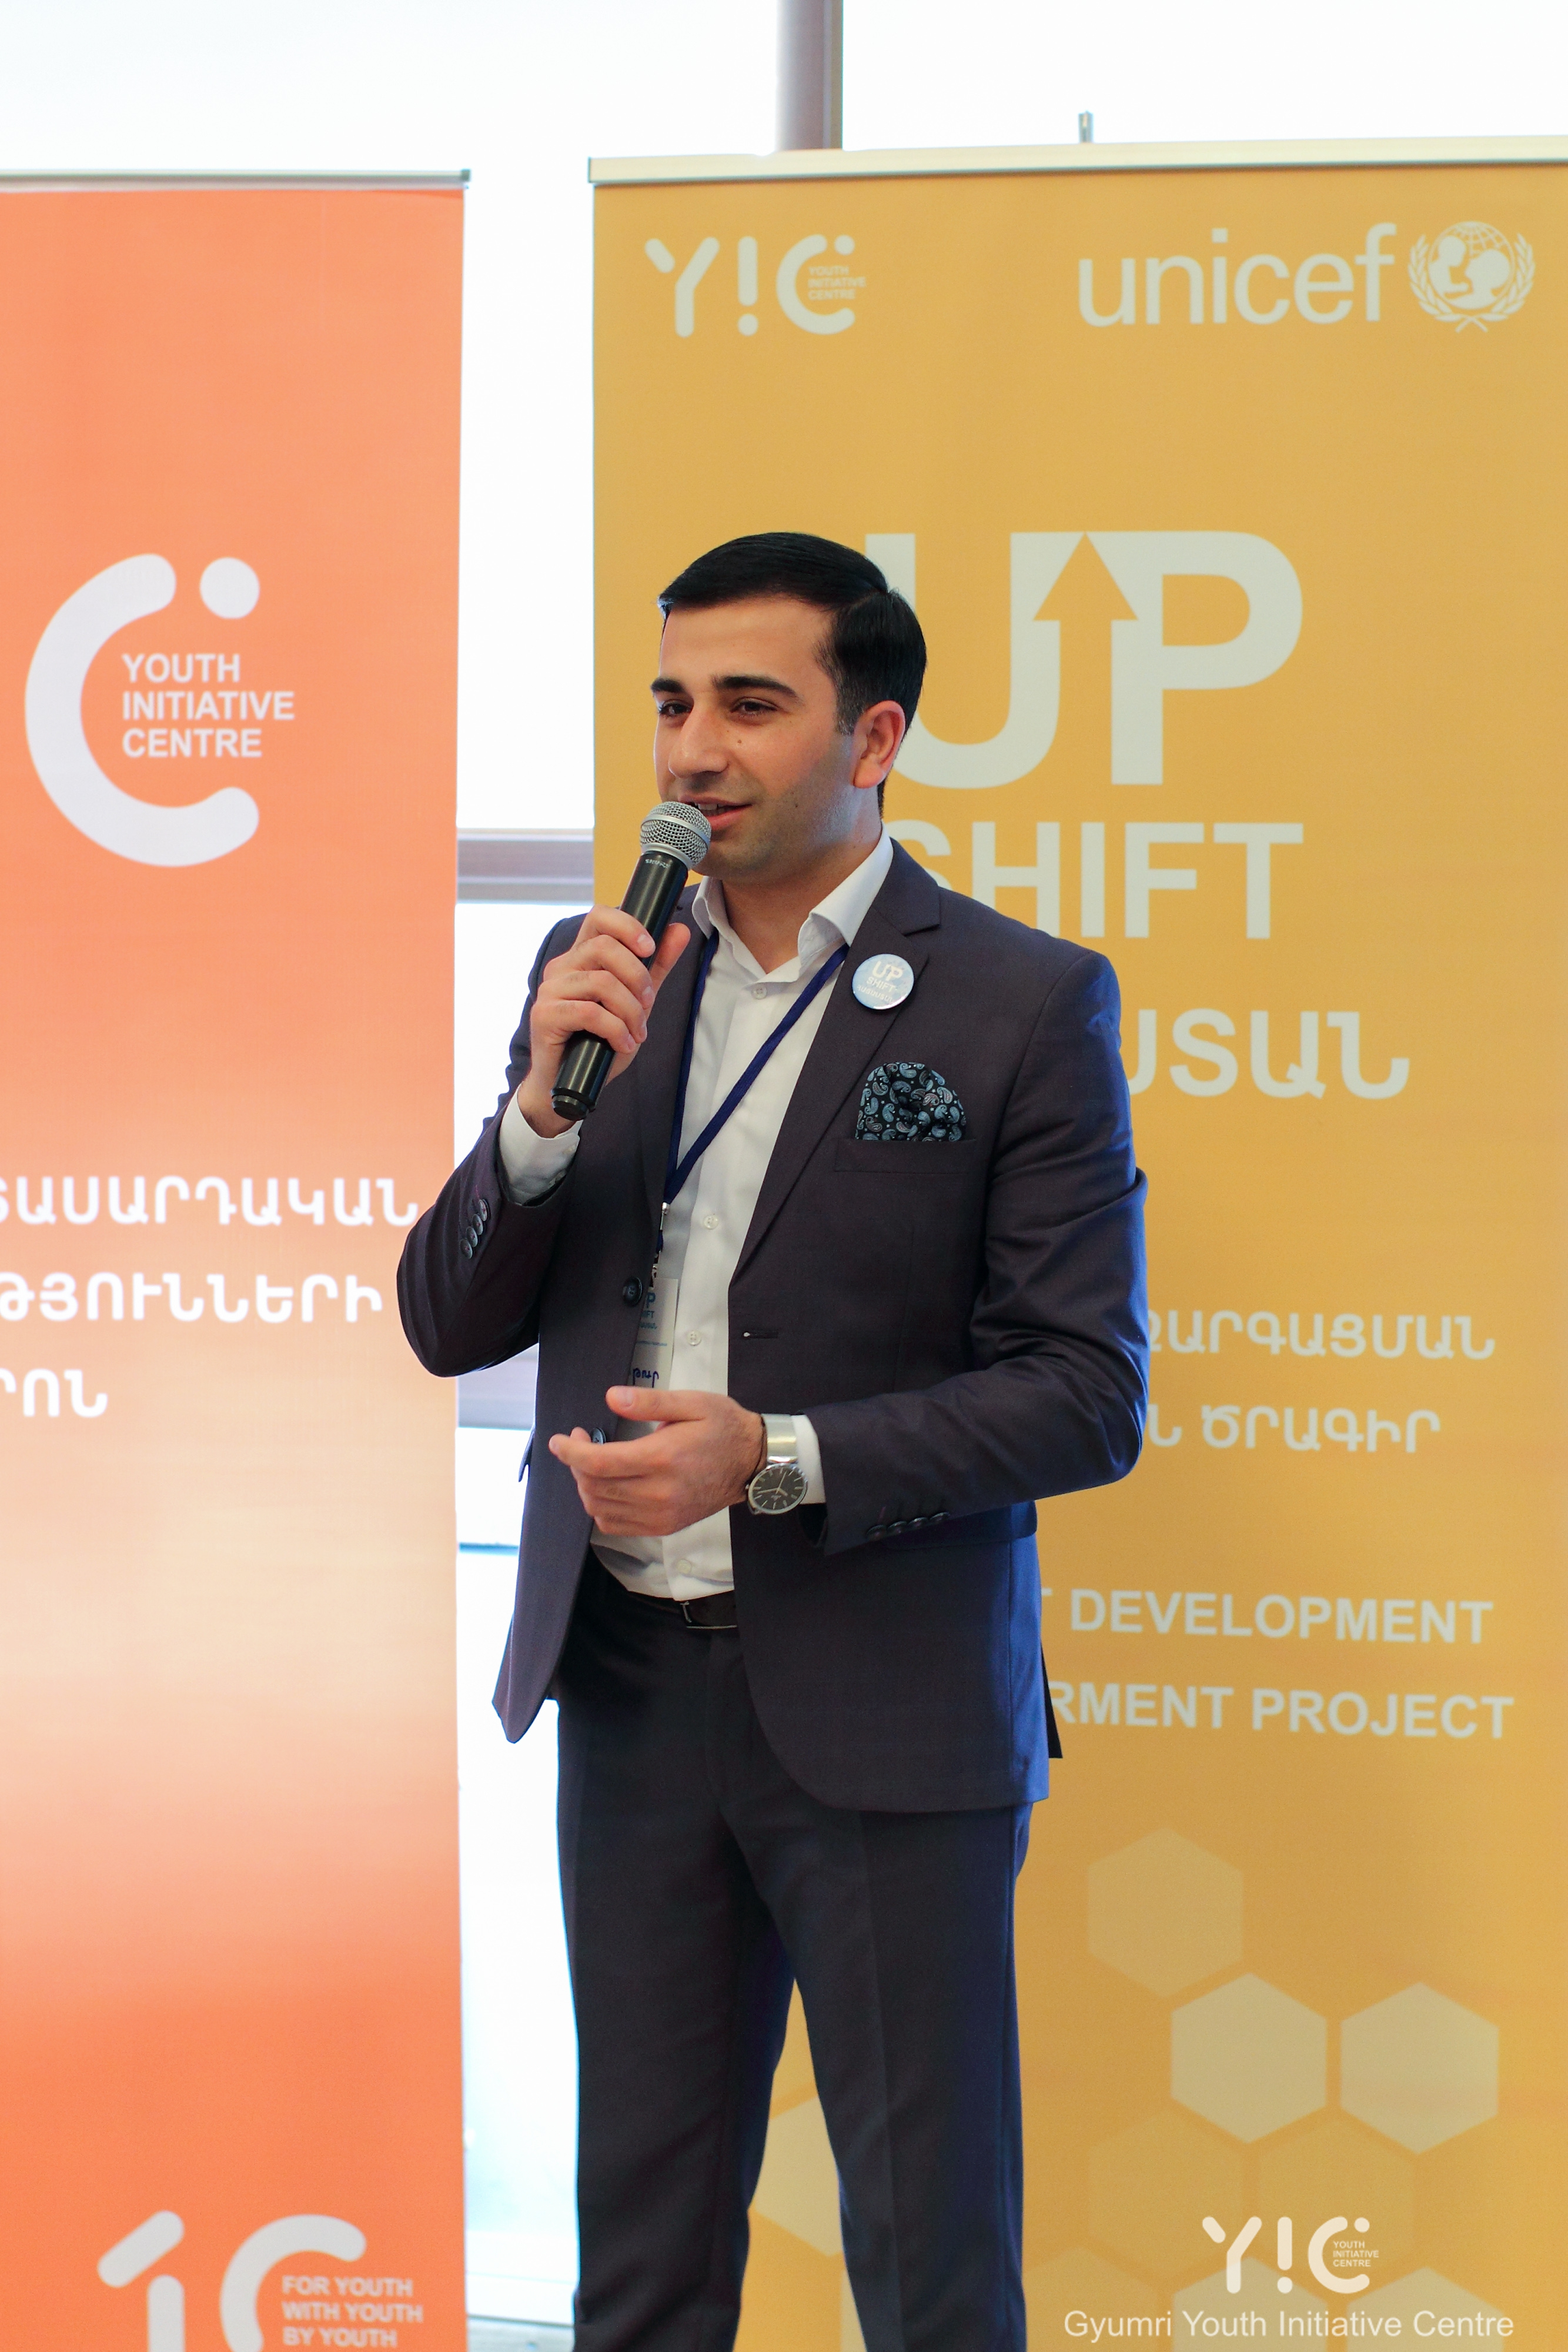 April 2019, city of Gyumri, Project Design training for Upshift adolescent teams by YIC and Unicef.